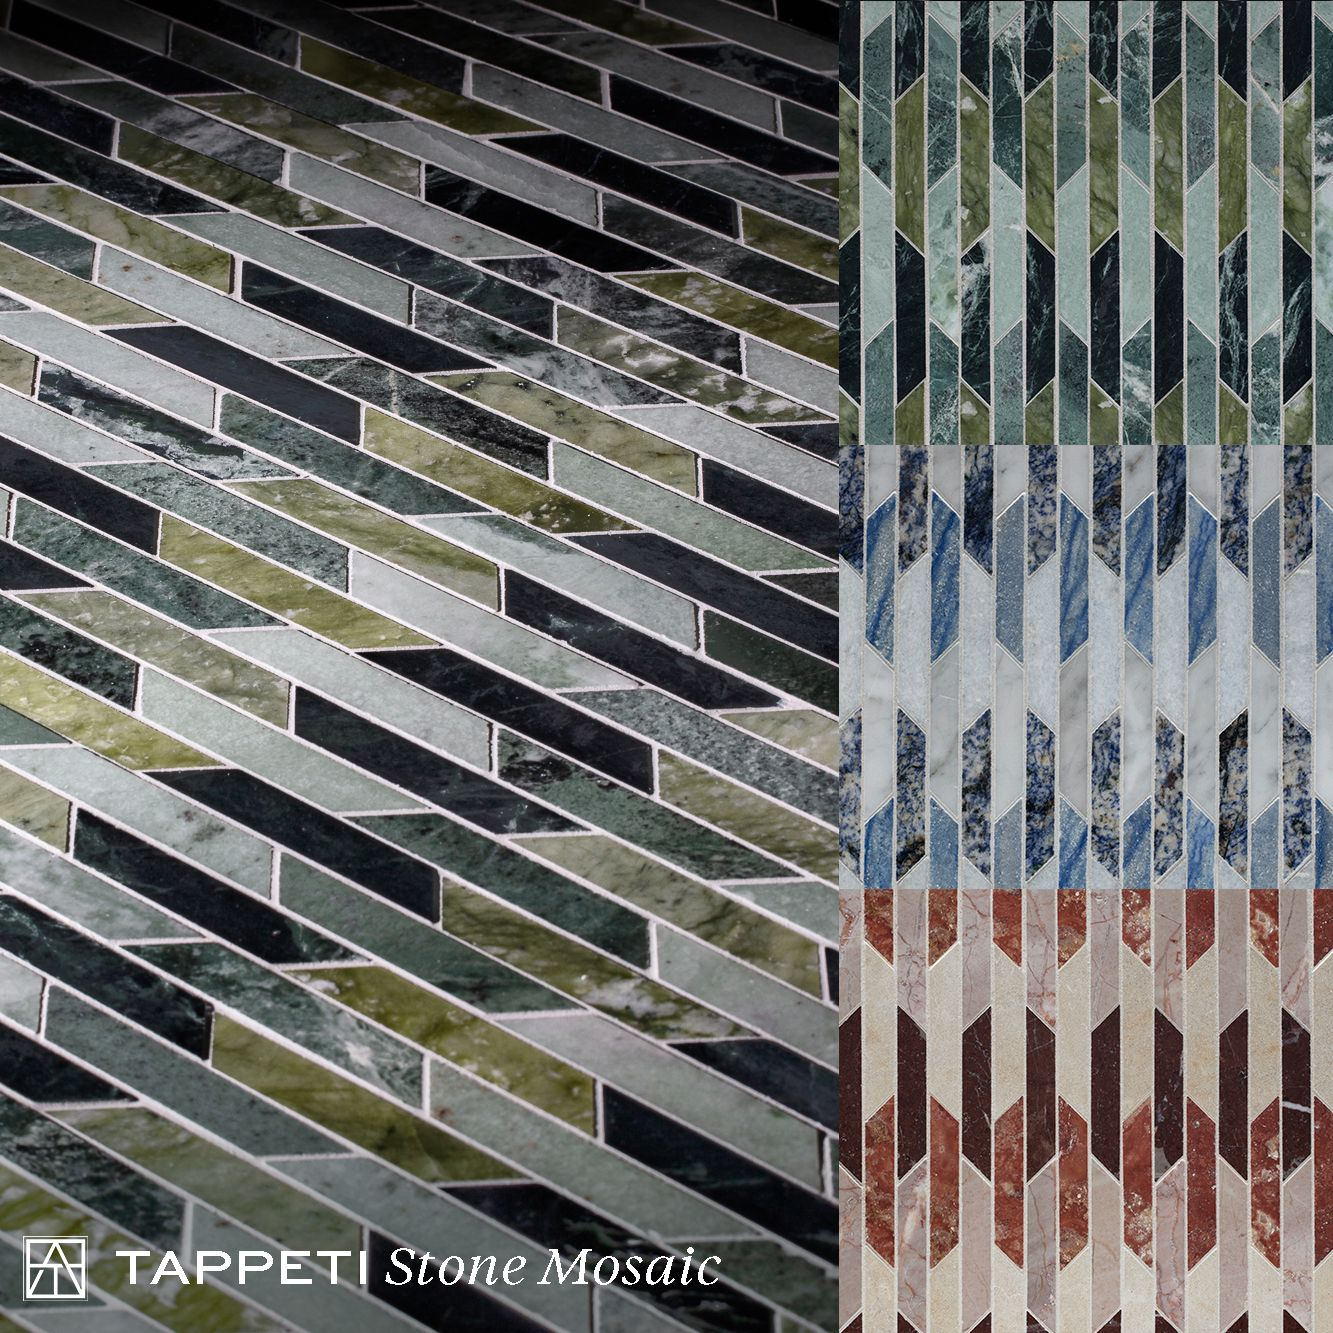 Artistic Stairs Canada: New! Inspired By The Intricate Patterns And Color Play Of